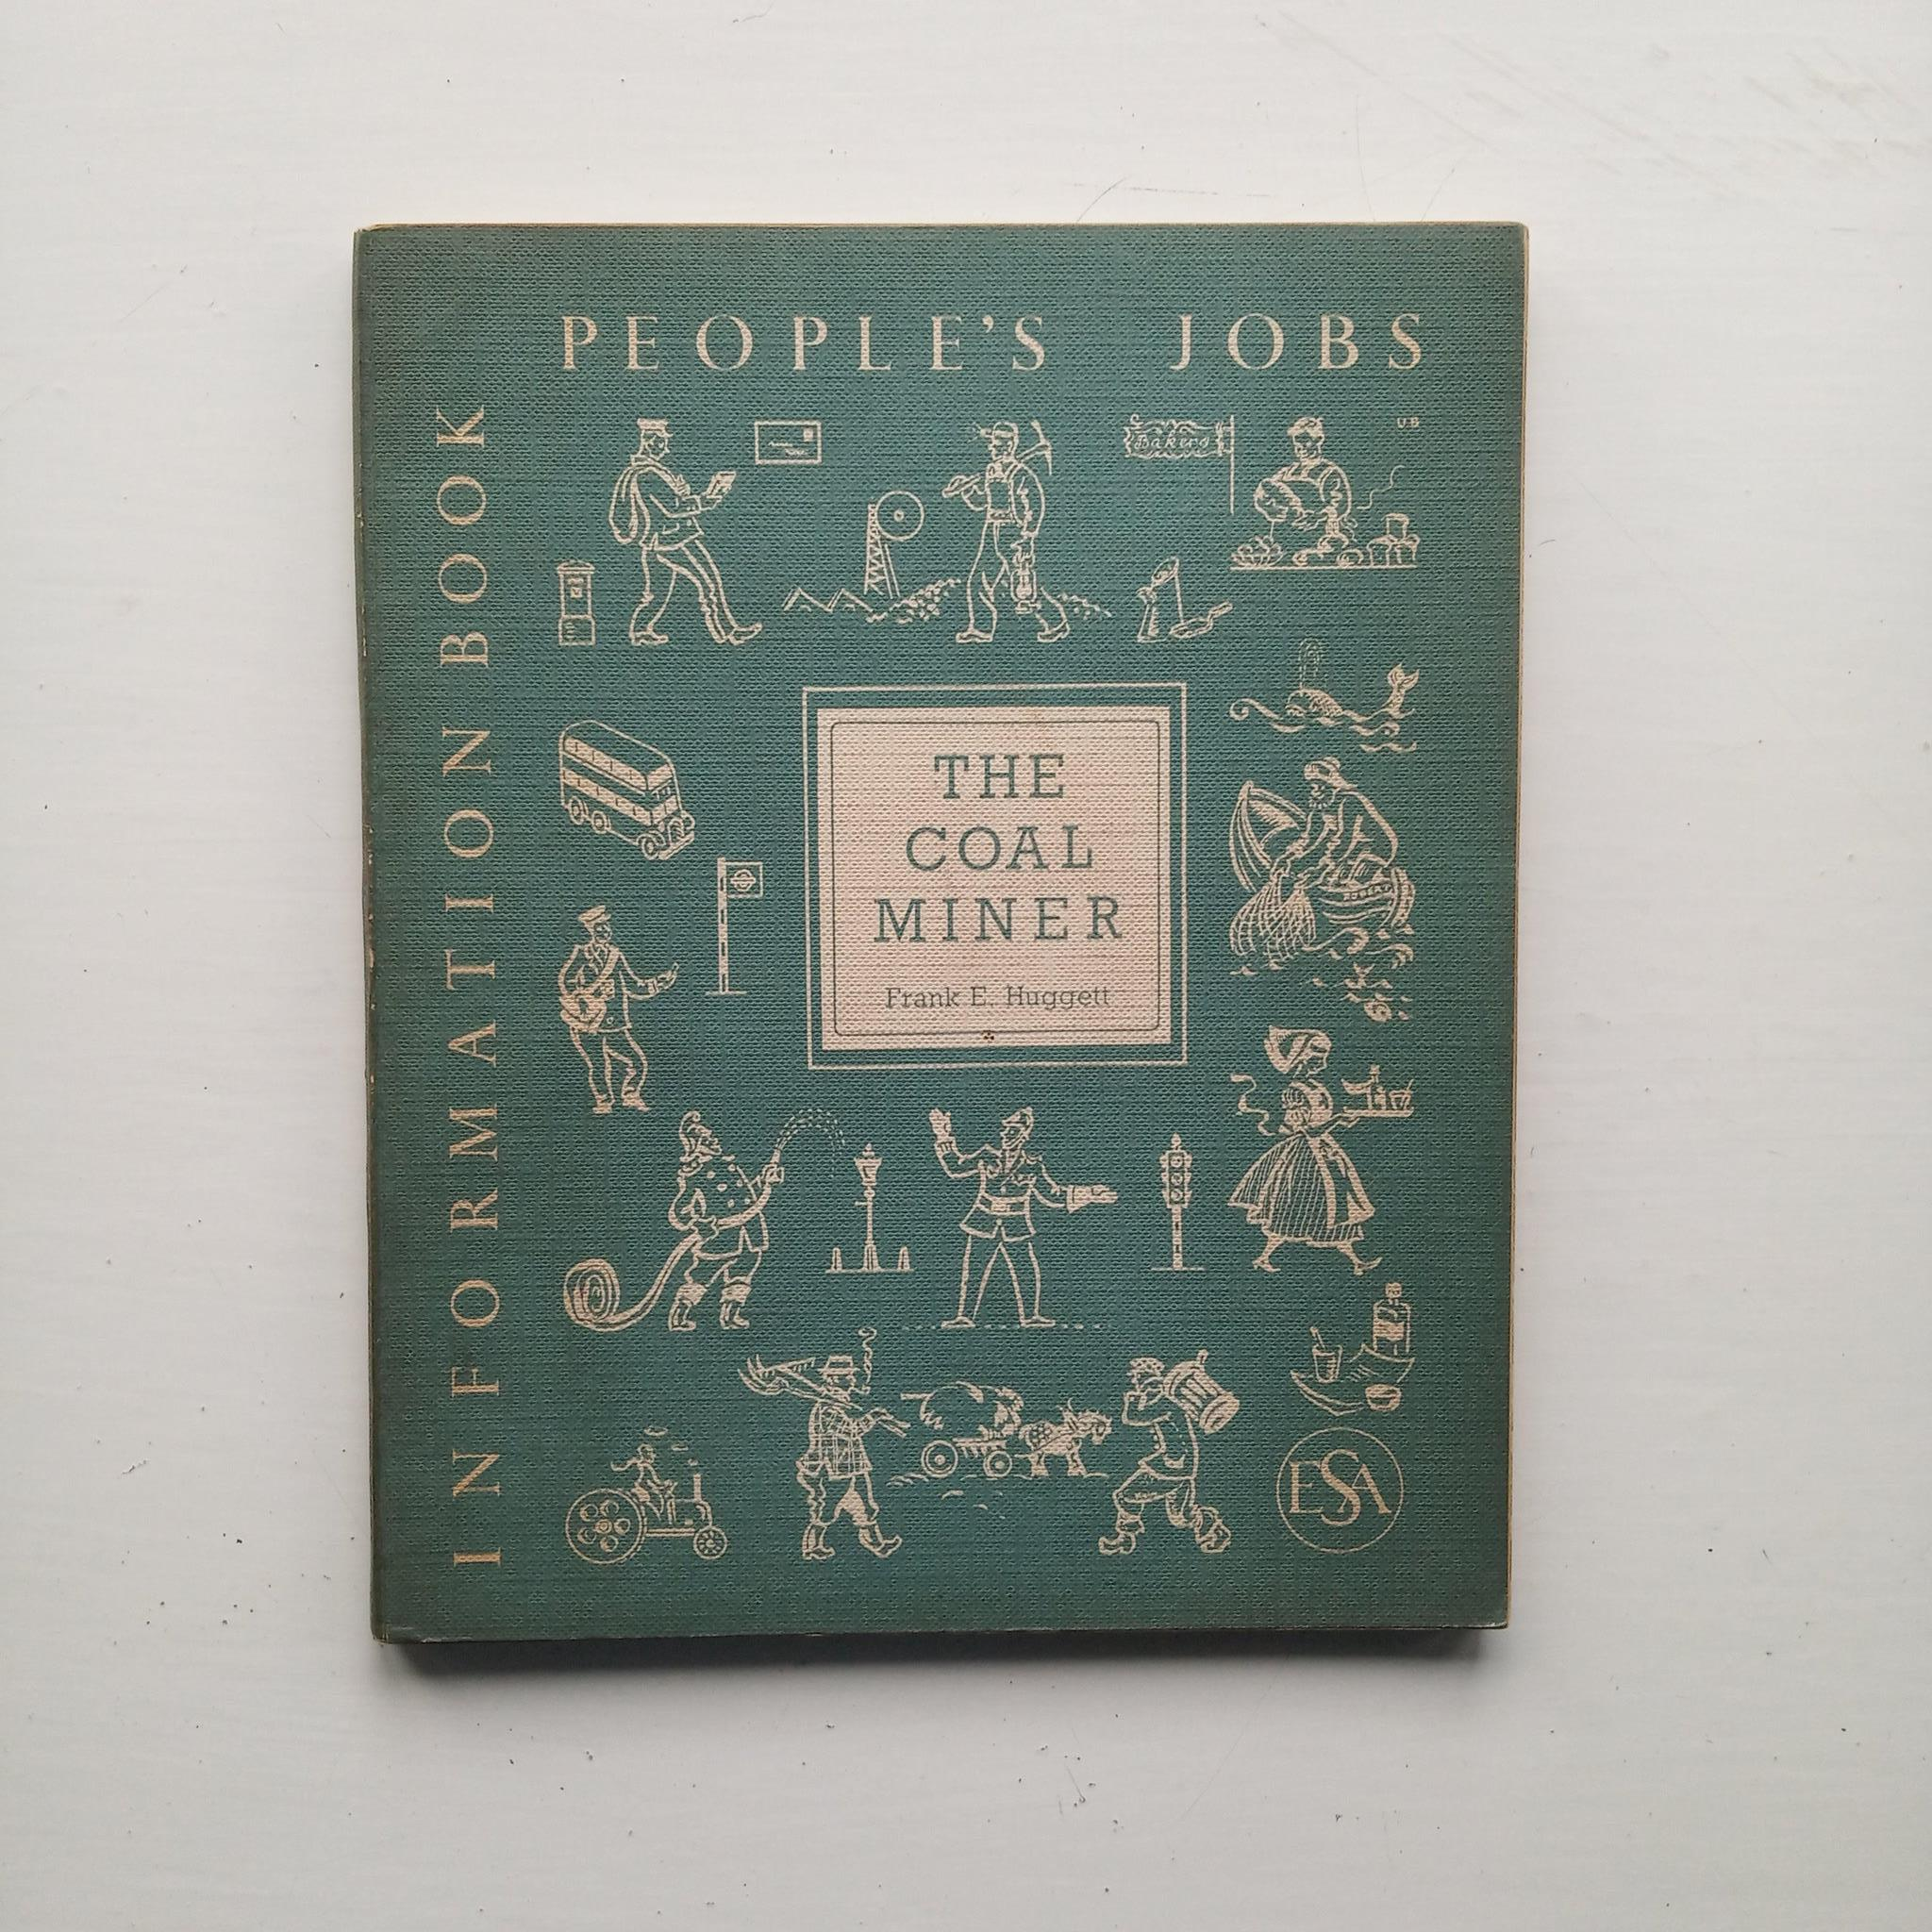 People's Jobs - The Coal Miner by Frank E. Huggett